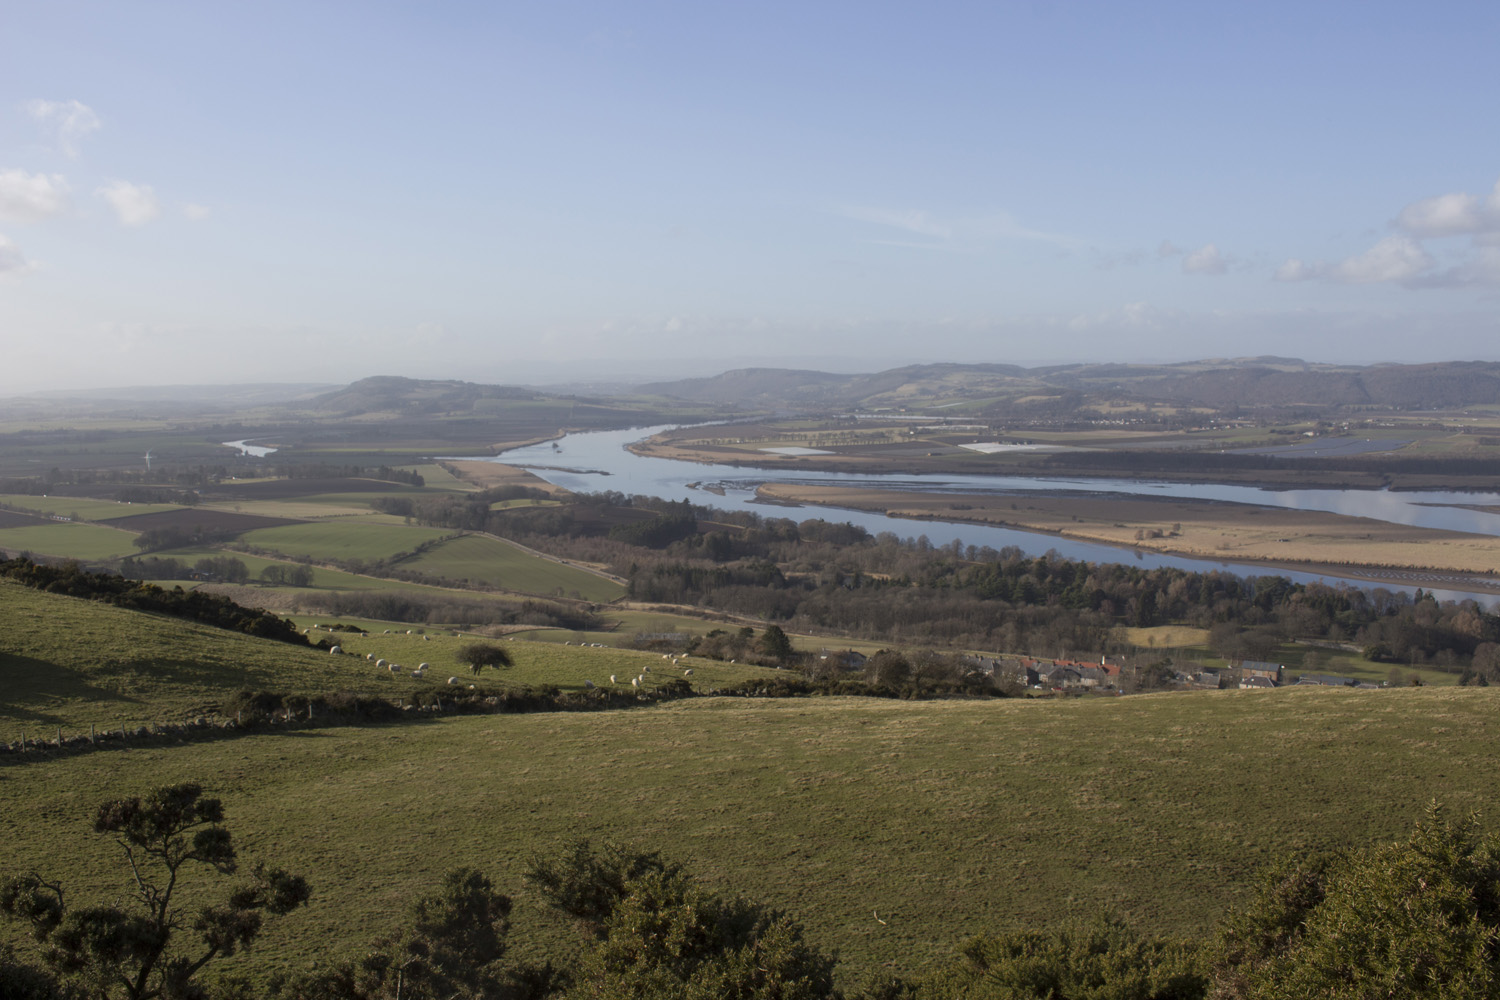 View North West toward Perth, from Ormiston Hill which rises behind Newburgh's centre